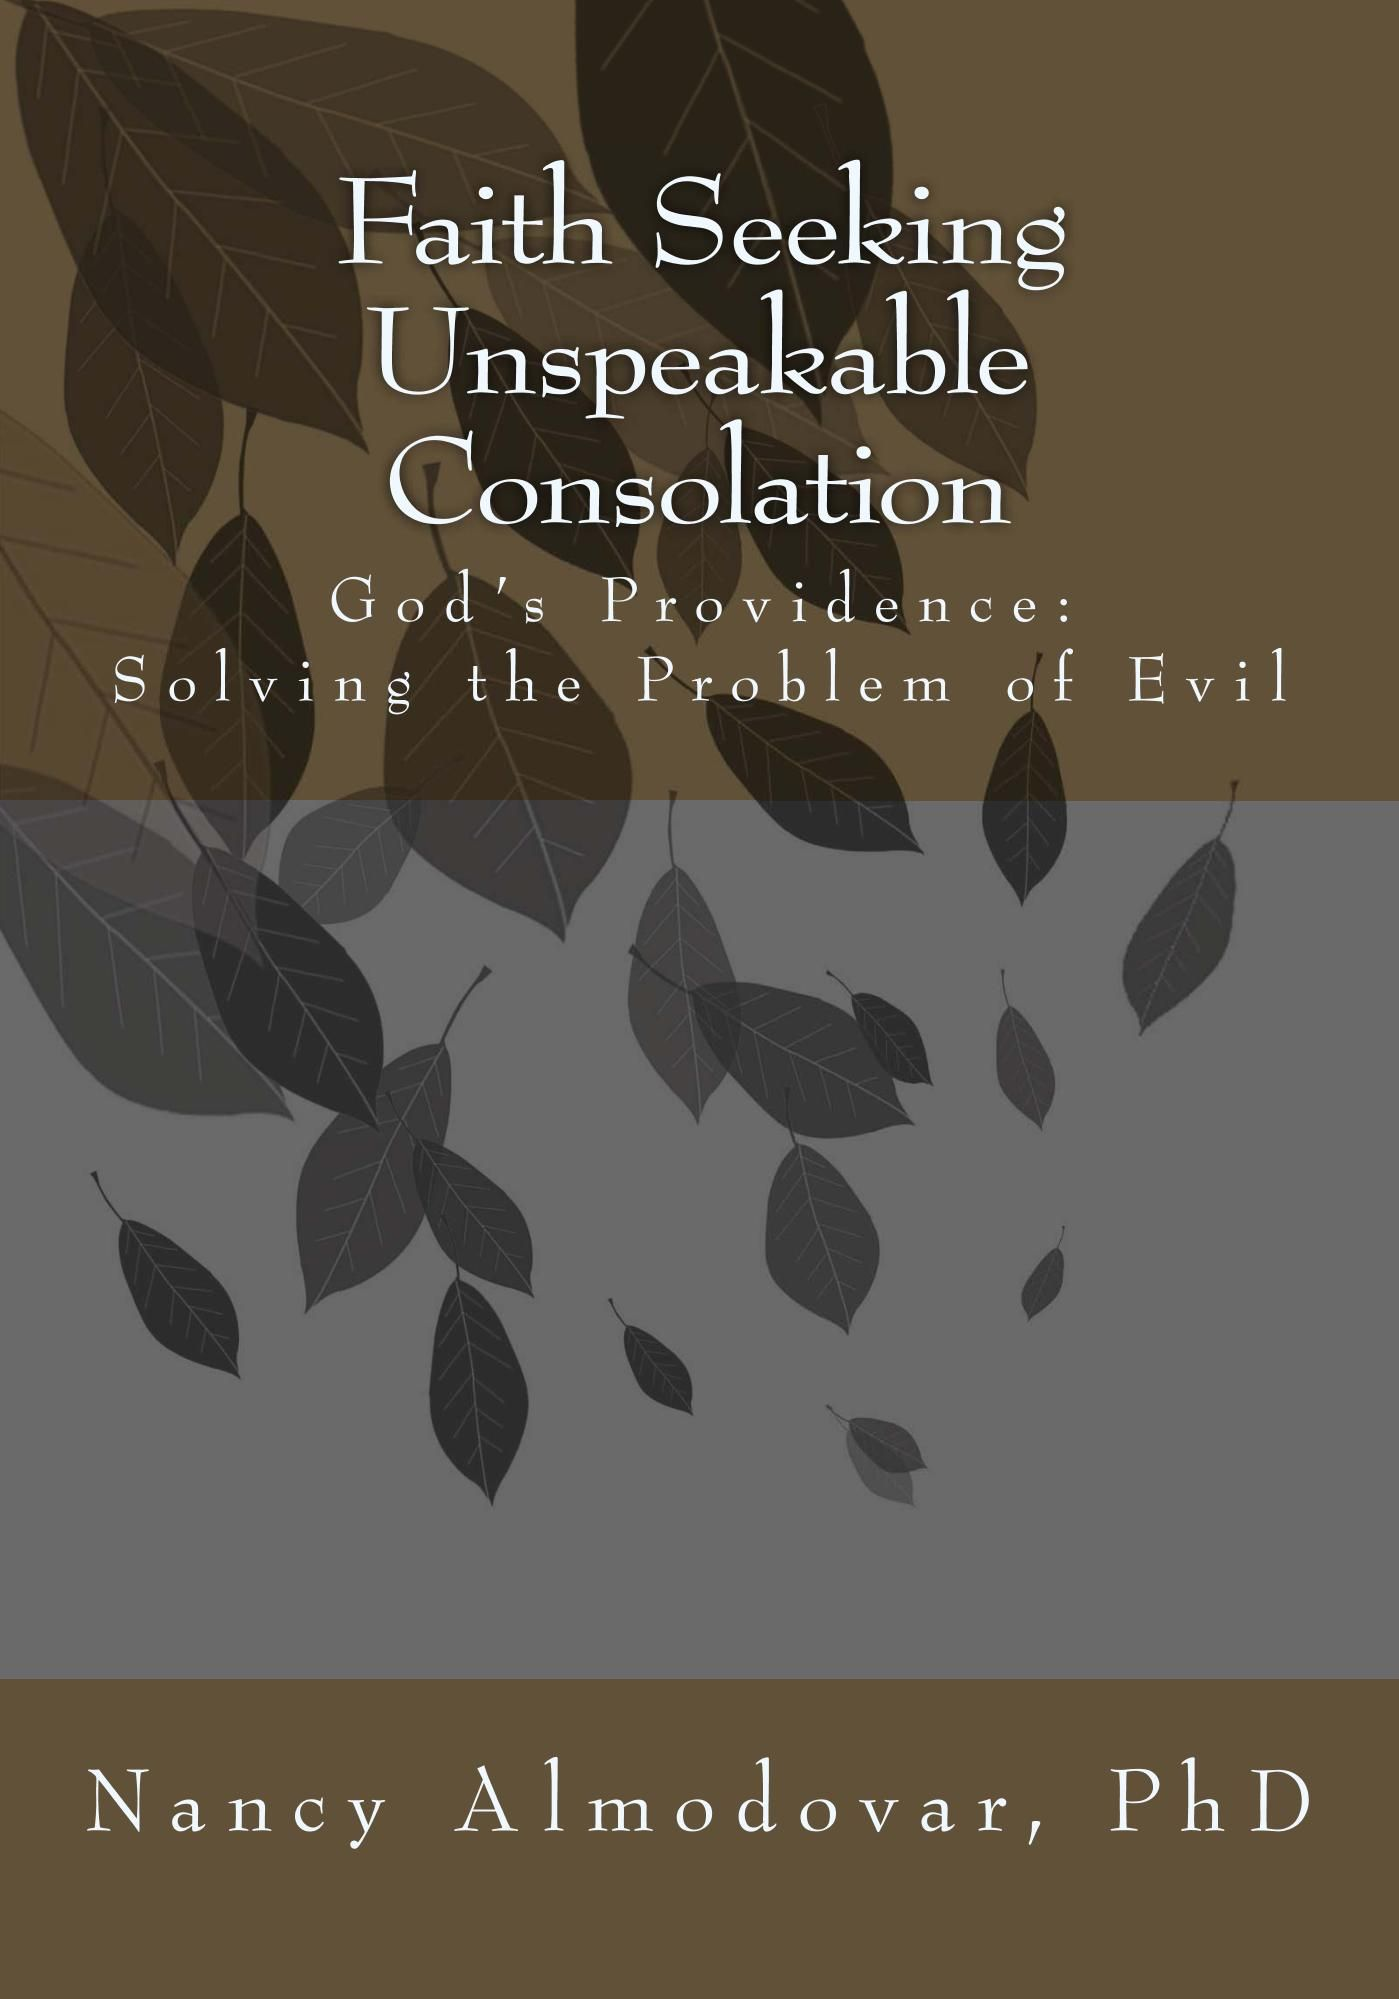 Book Cover Of My Doctoral Dissertation Available At Amazon And Barne Noble Kindle Free Problem Evil To